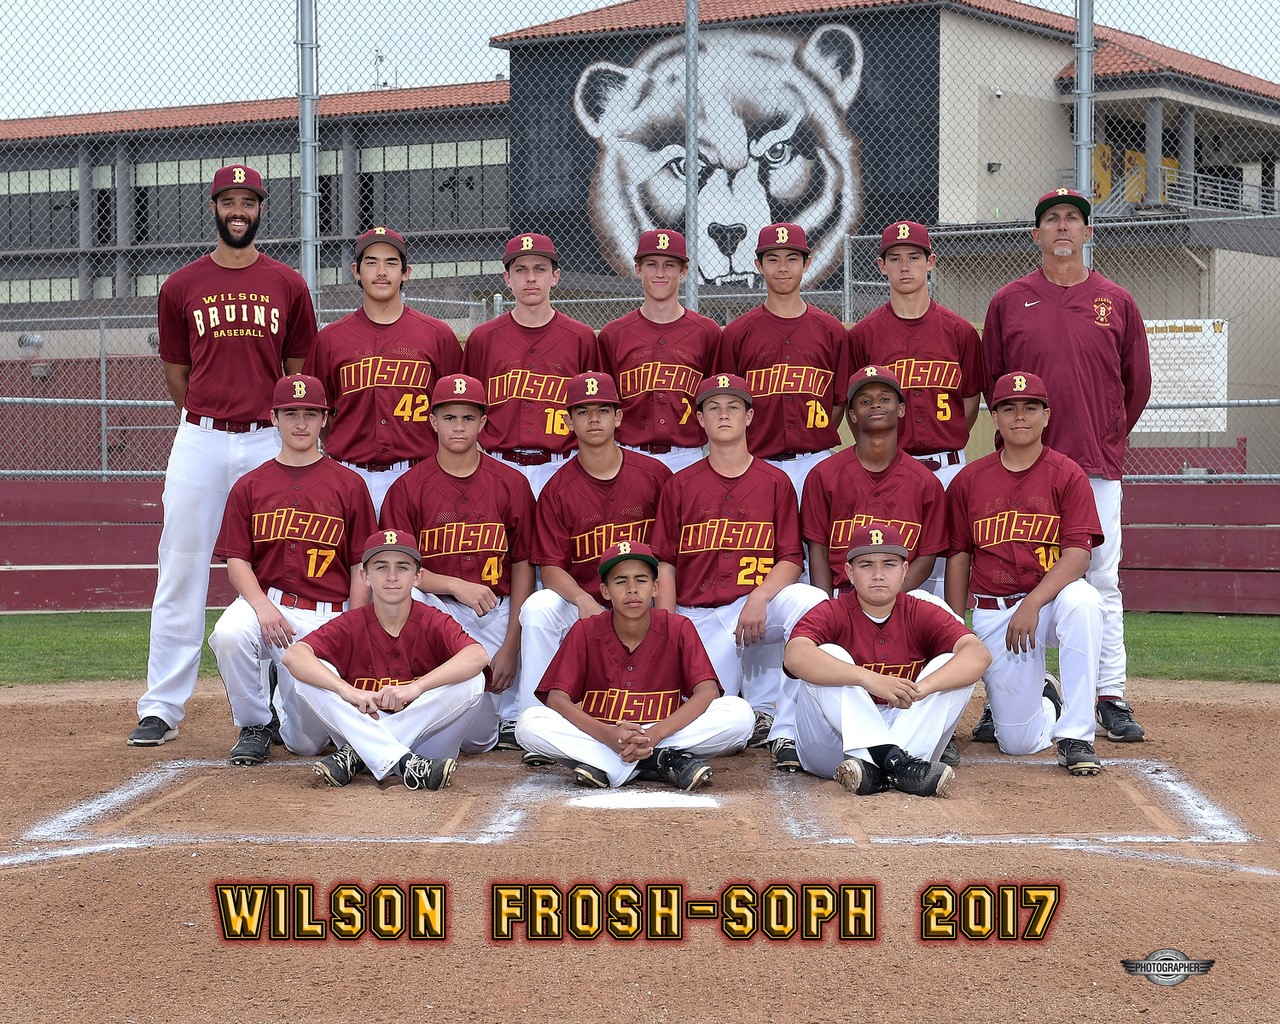 2017 Frosh/Soph Baseball Team